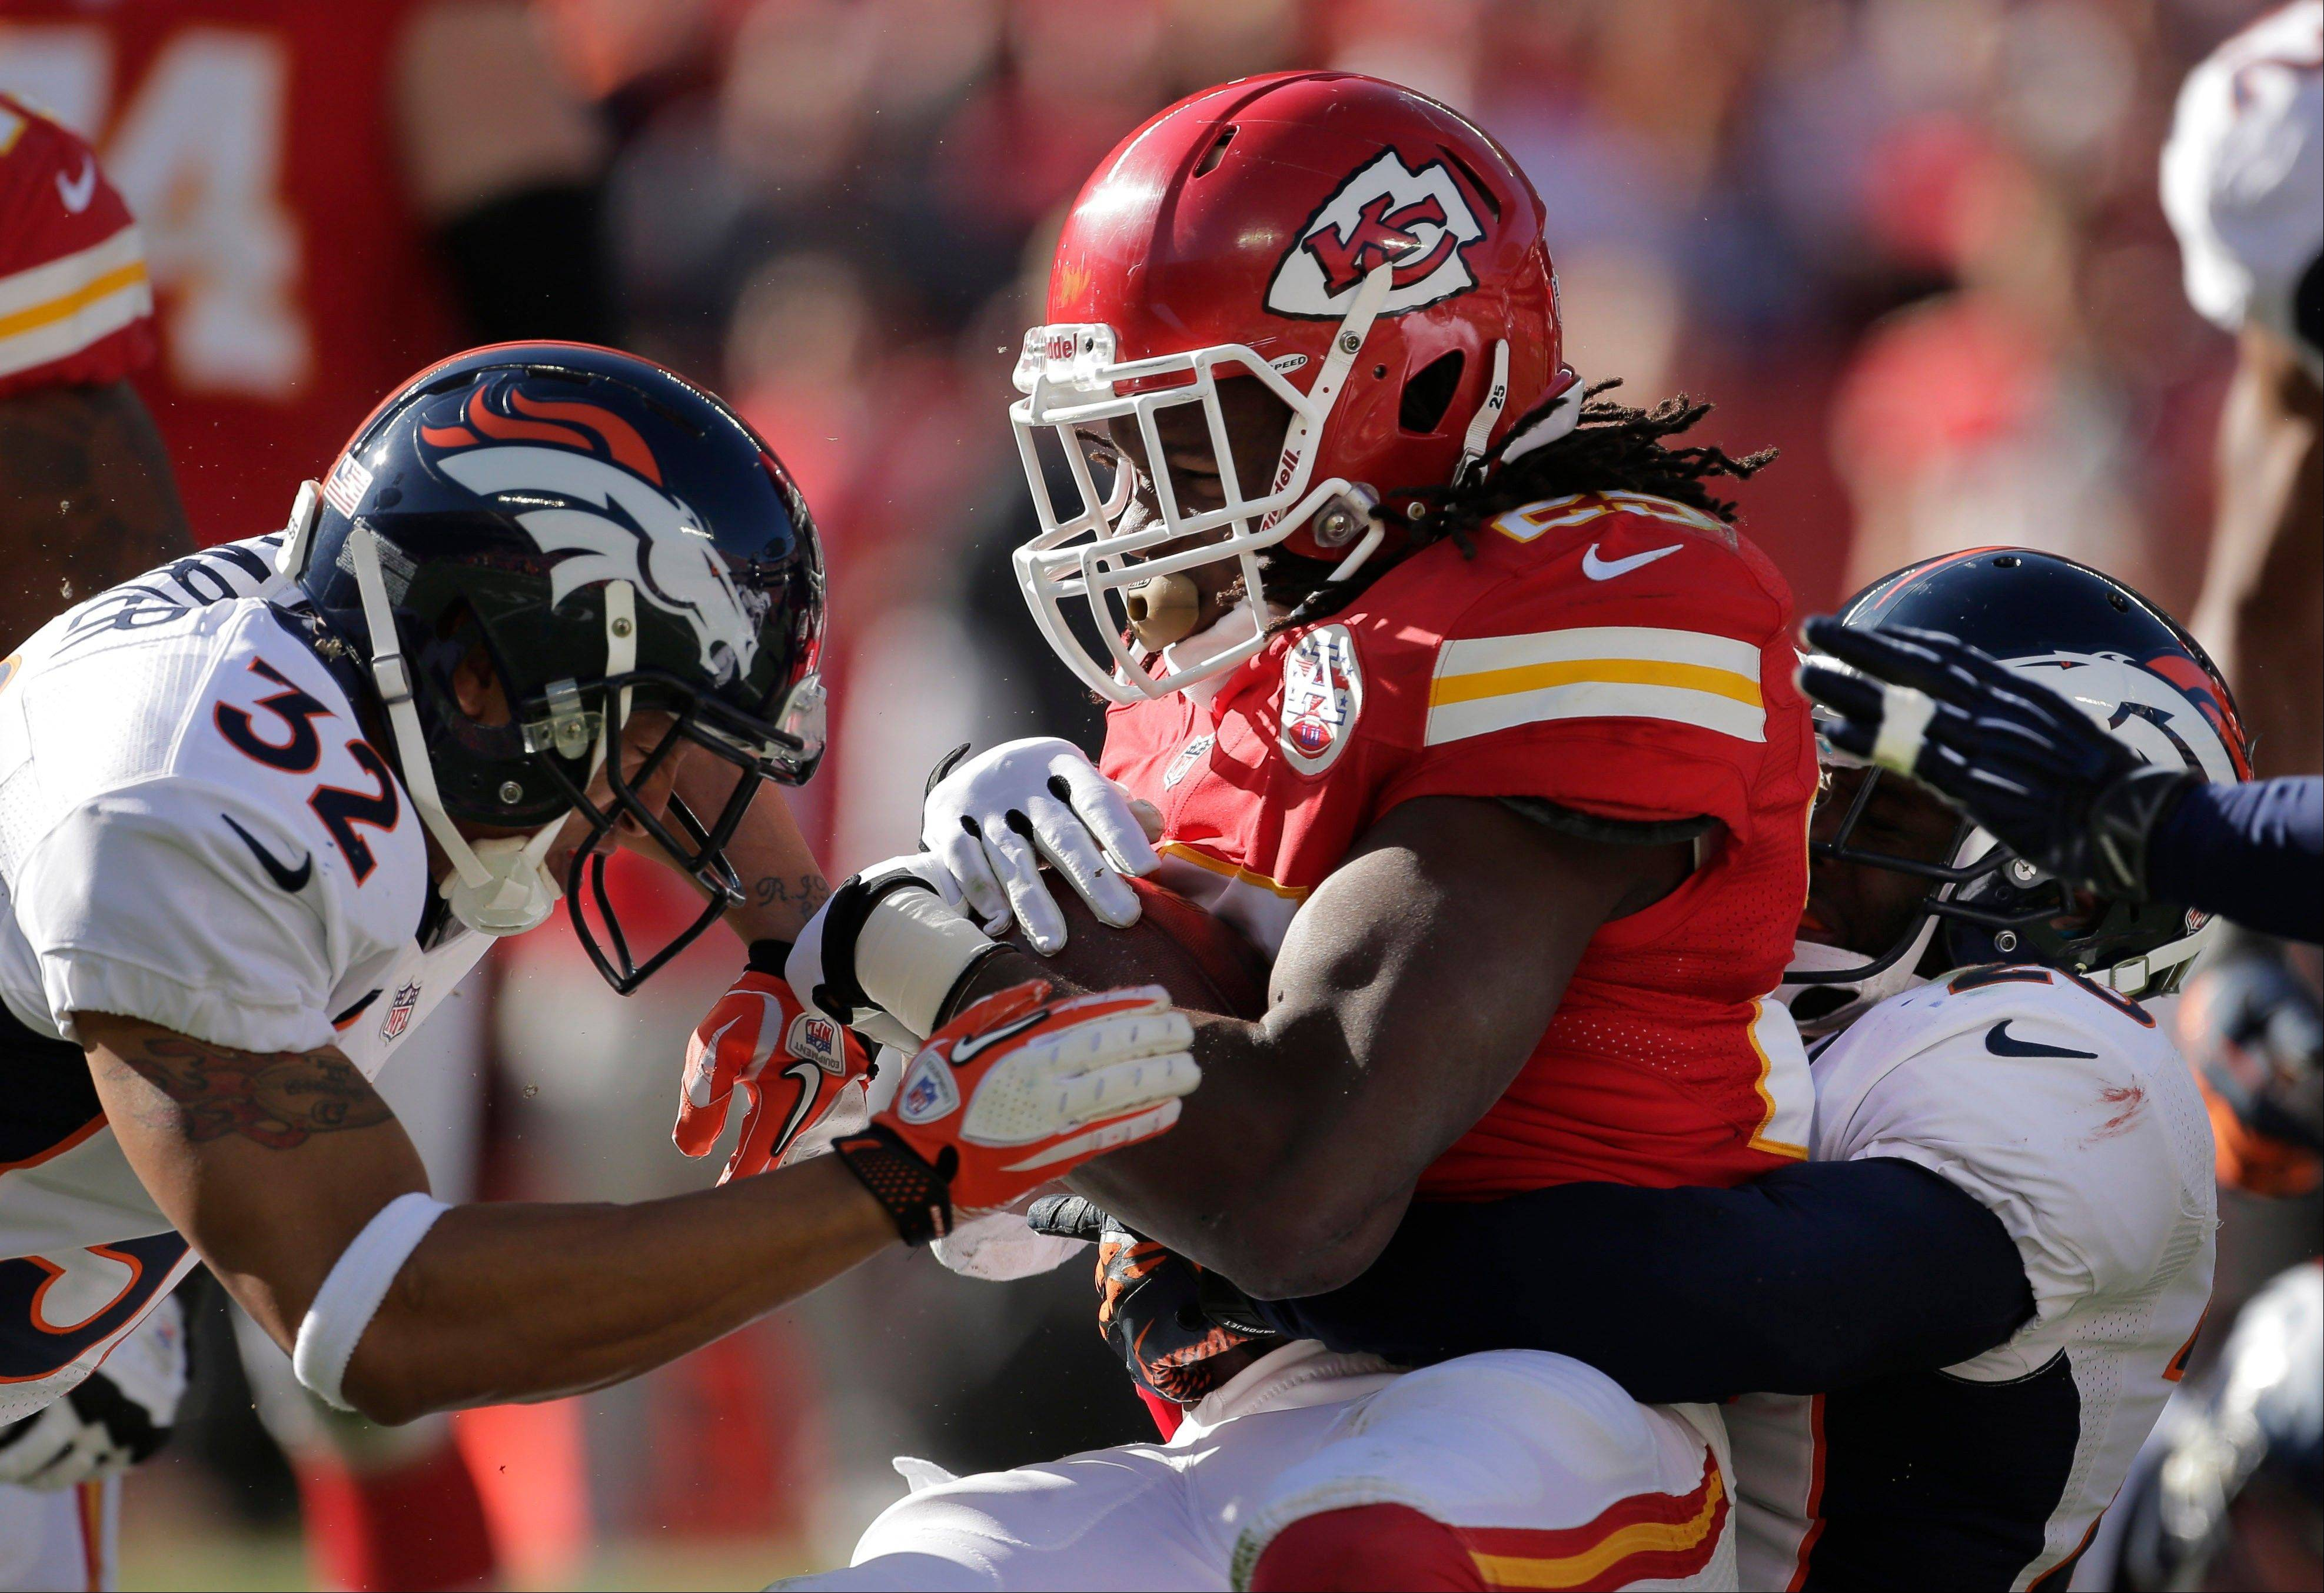 Kansas City Chiefs running back Jamaal Charles is tackled by Denver Broncos strong safety Mike Adams, right, and defensive back Tony Carter (32) Sunday during the first half at Arrowhead Stadium in Kansas City, Mo. harles has caused a stir after asking for Broncos quarterback Peyton Manning�s autograph following the game.